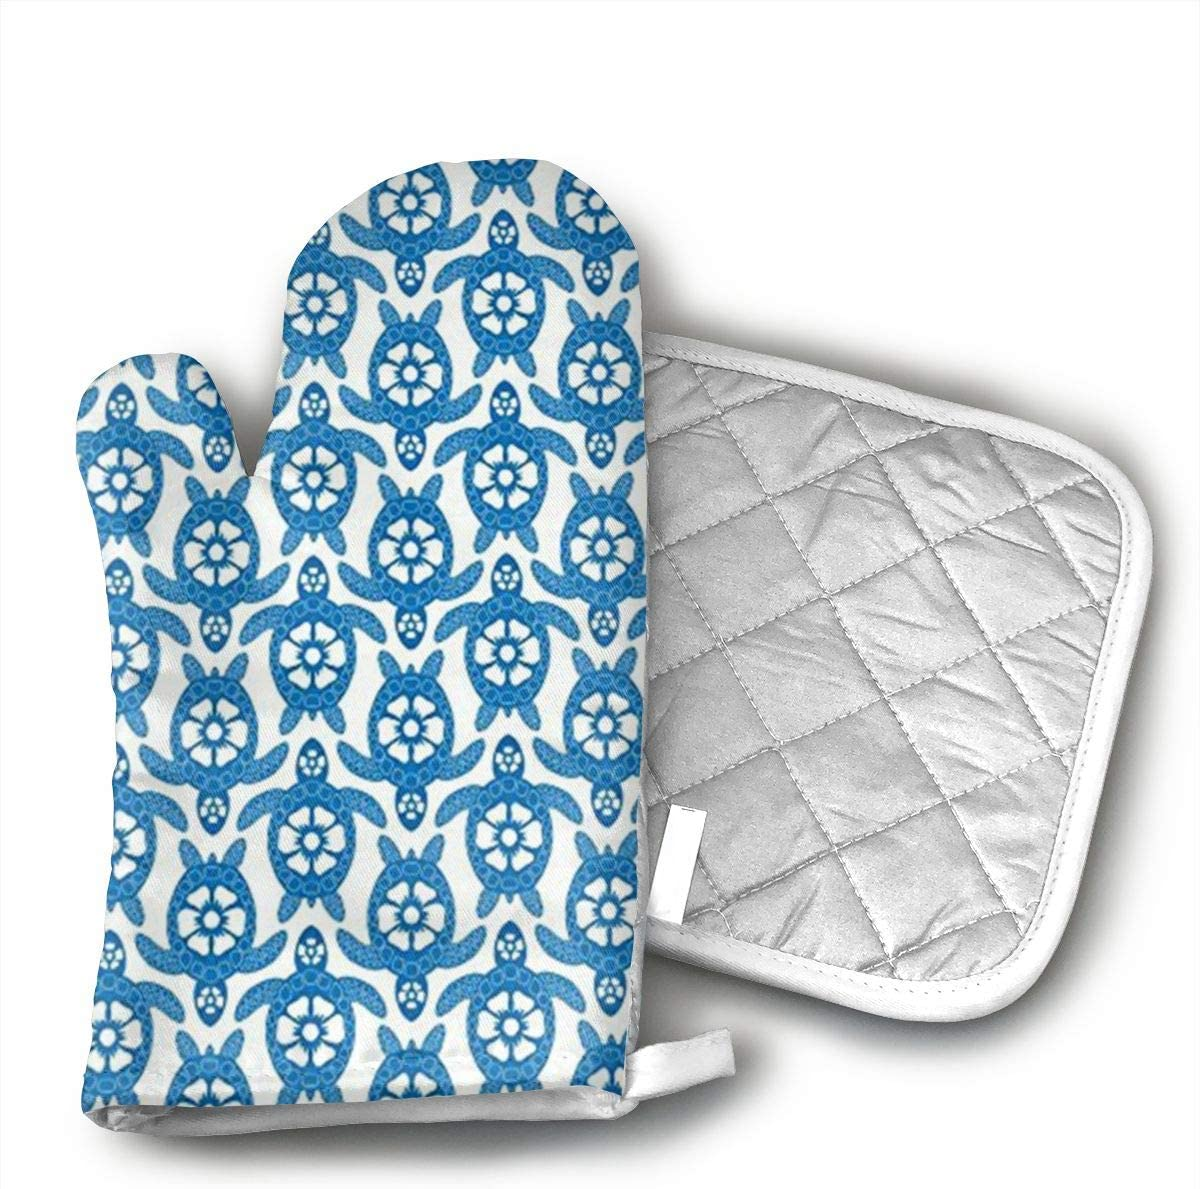 GRSTfsm Sea of Turtles Oven Mitts, Cook Mittens Protect Your Hand During Baking Doing BBQ